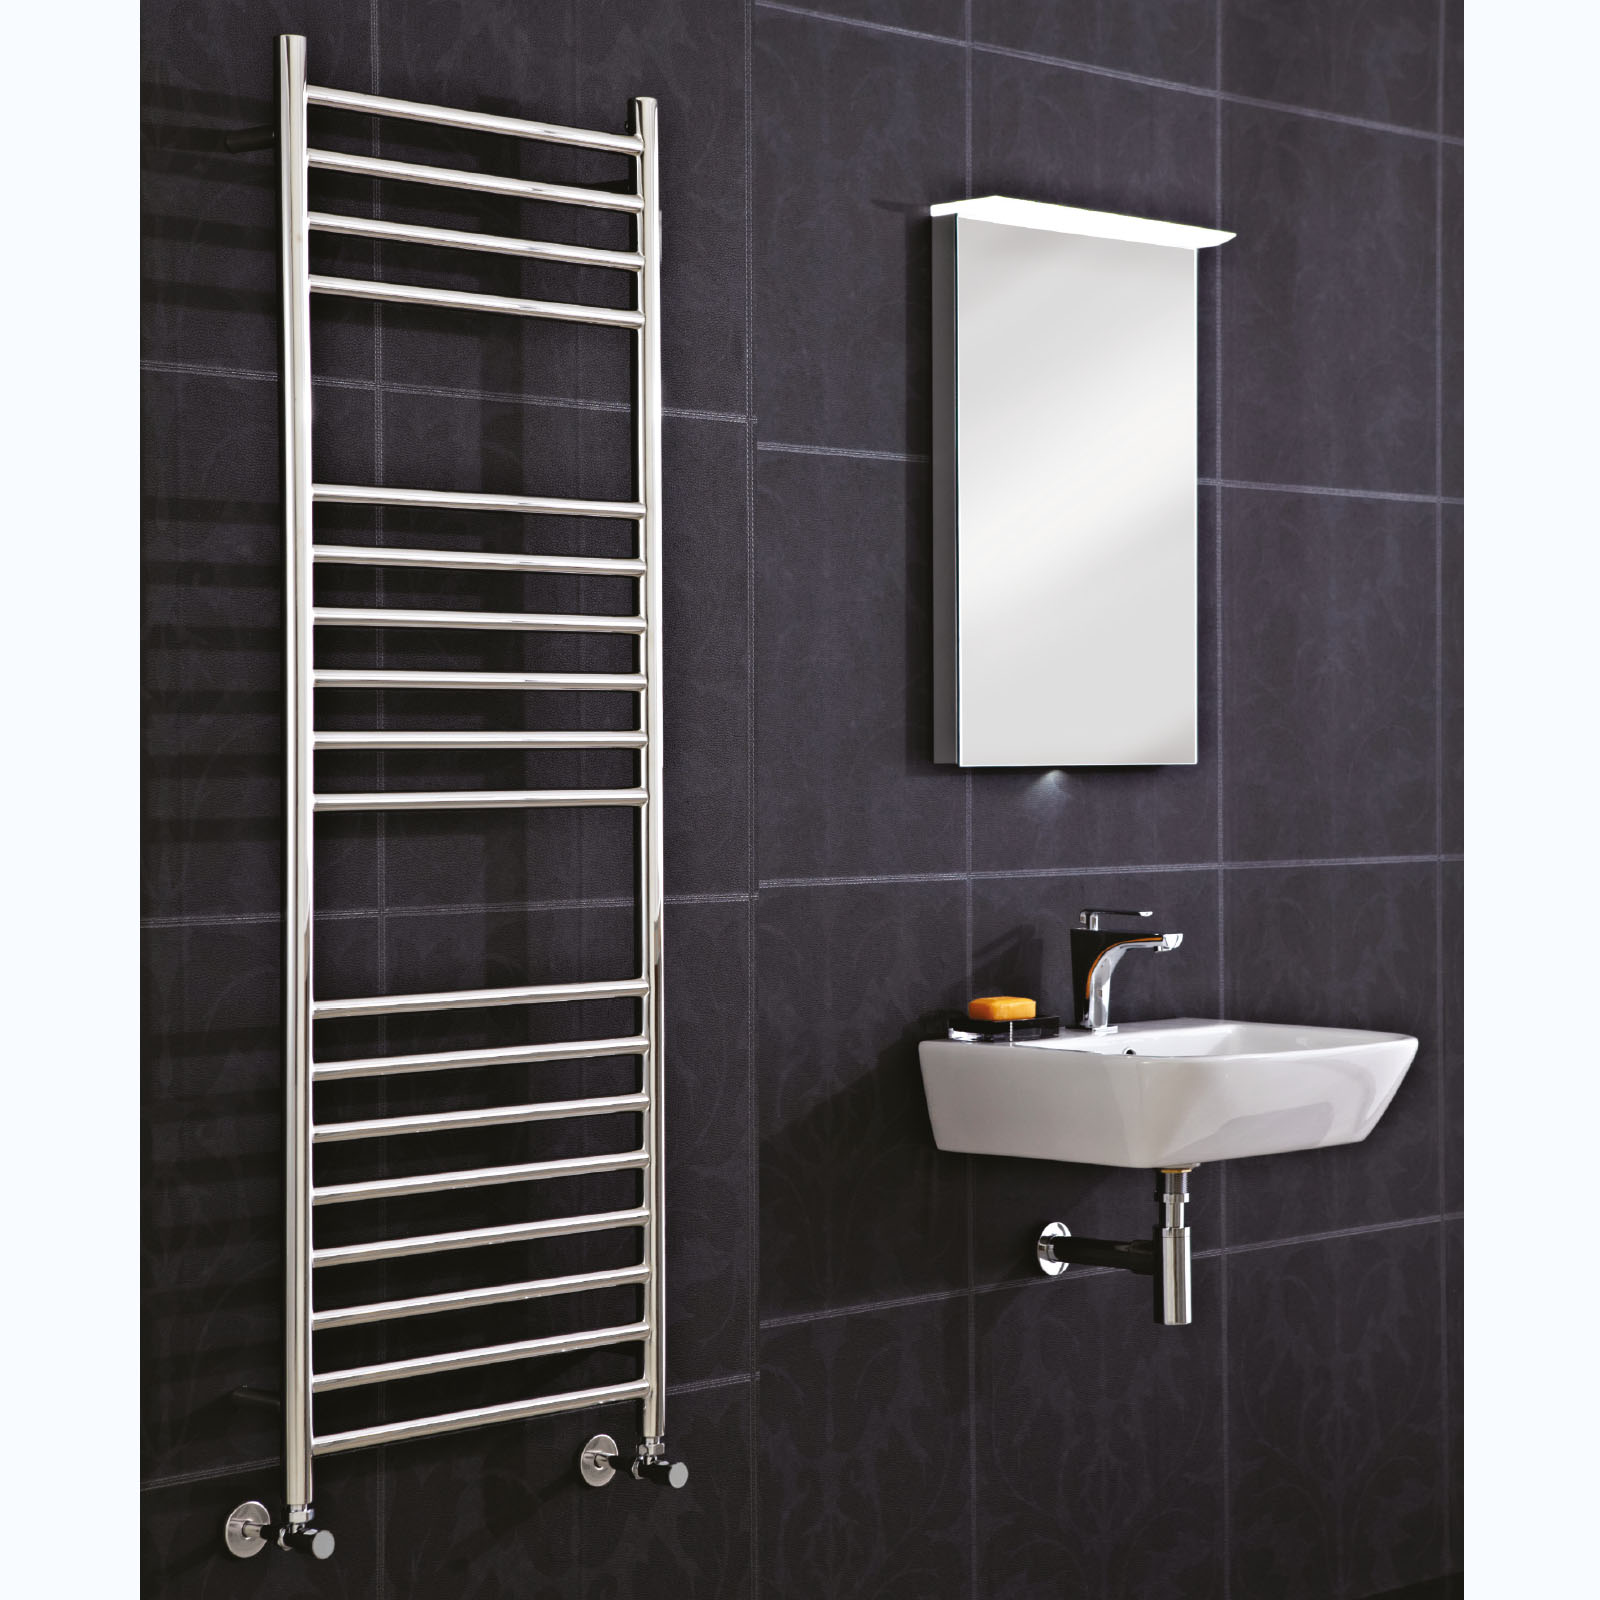 Designer Heated Towel Rails For Bathrooms Home Decoration Interior Design